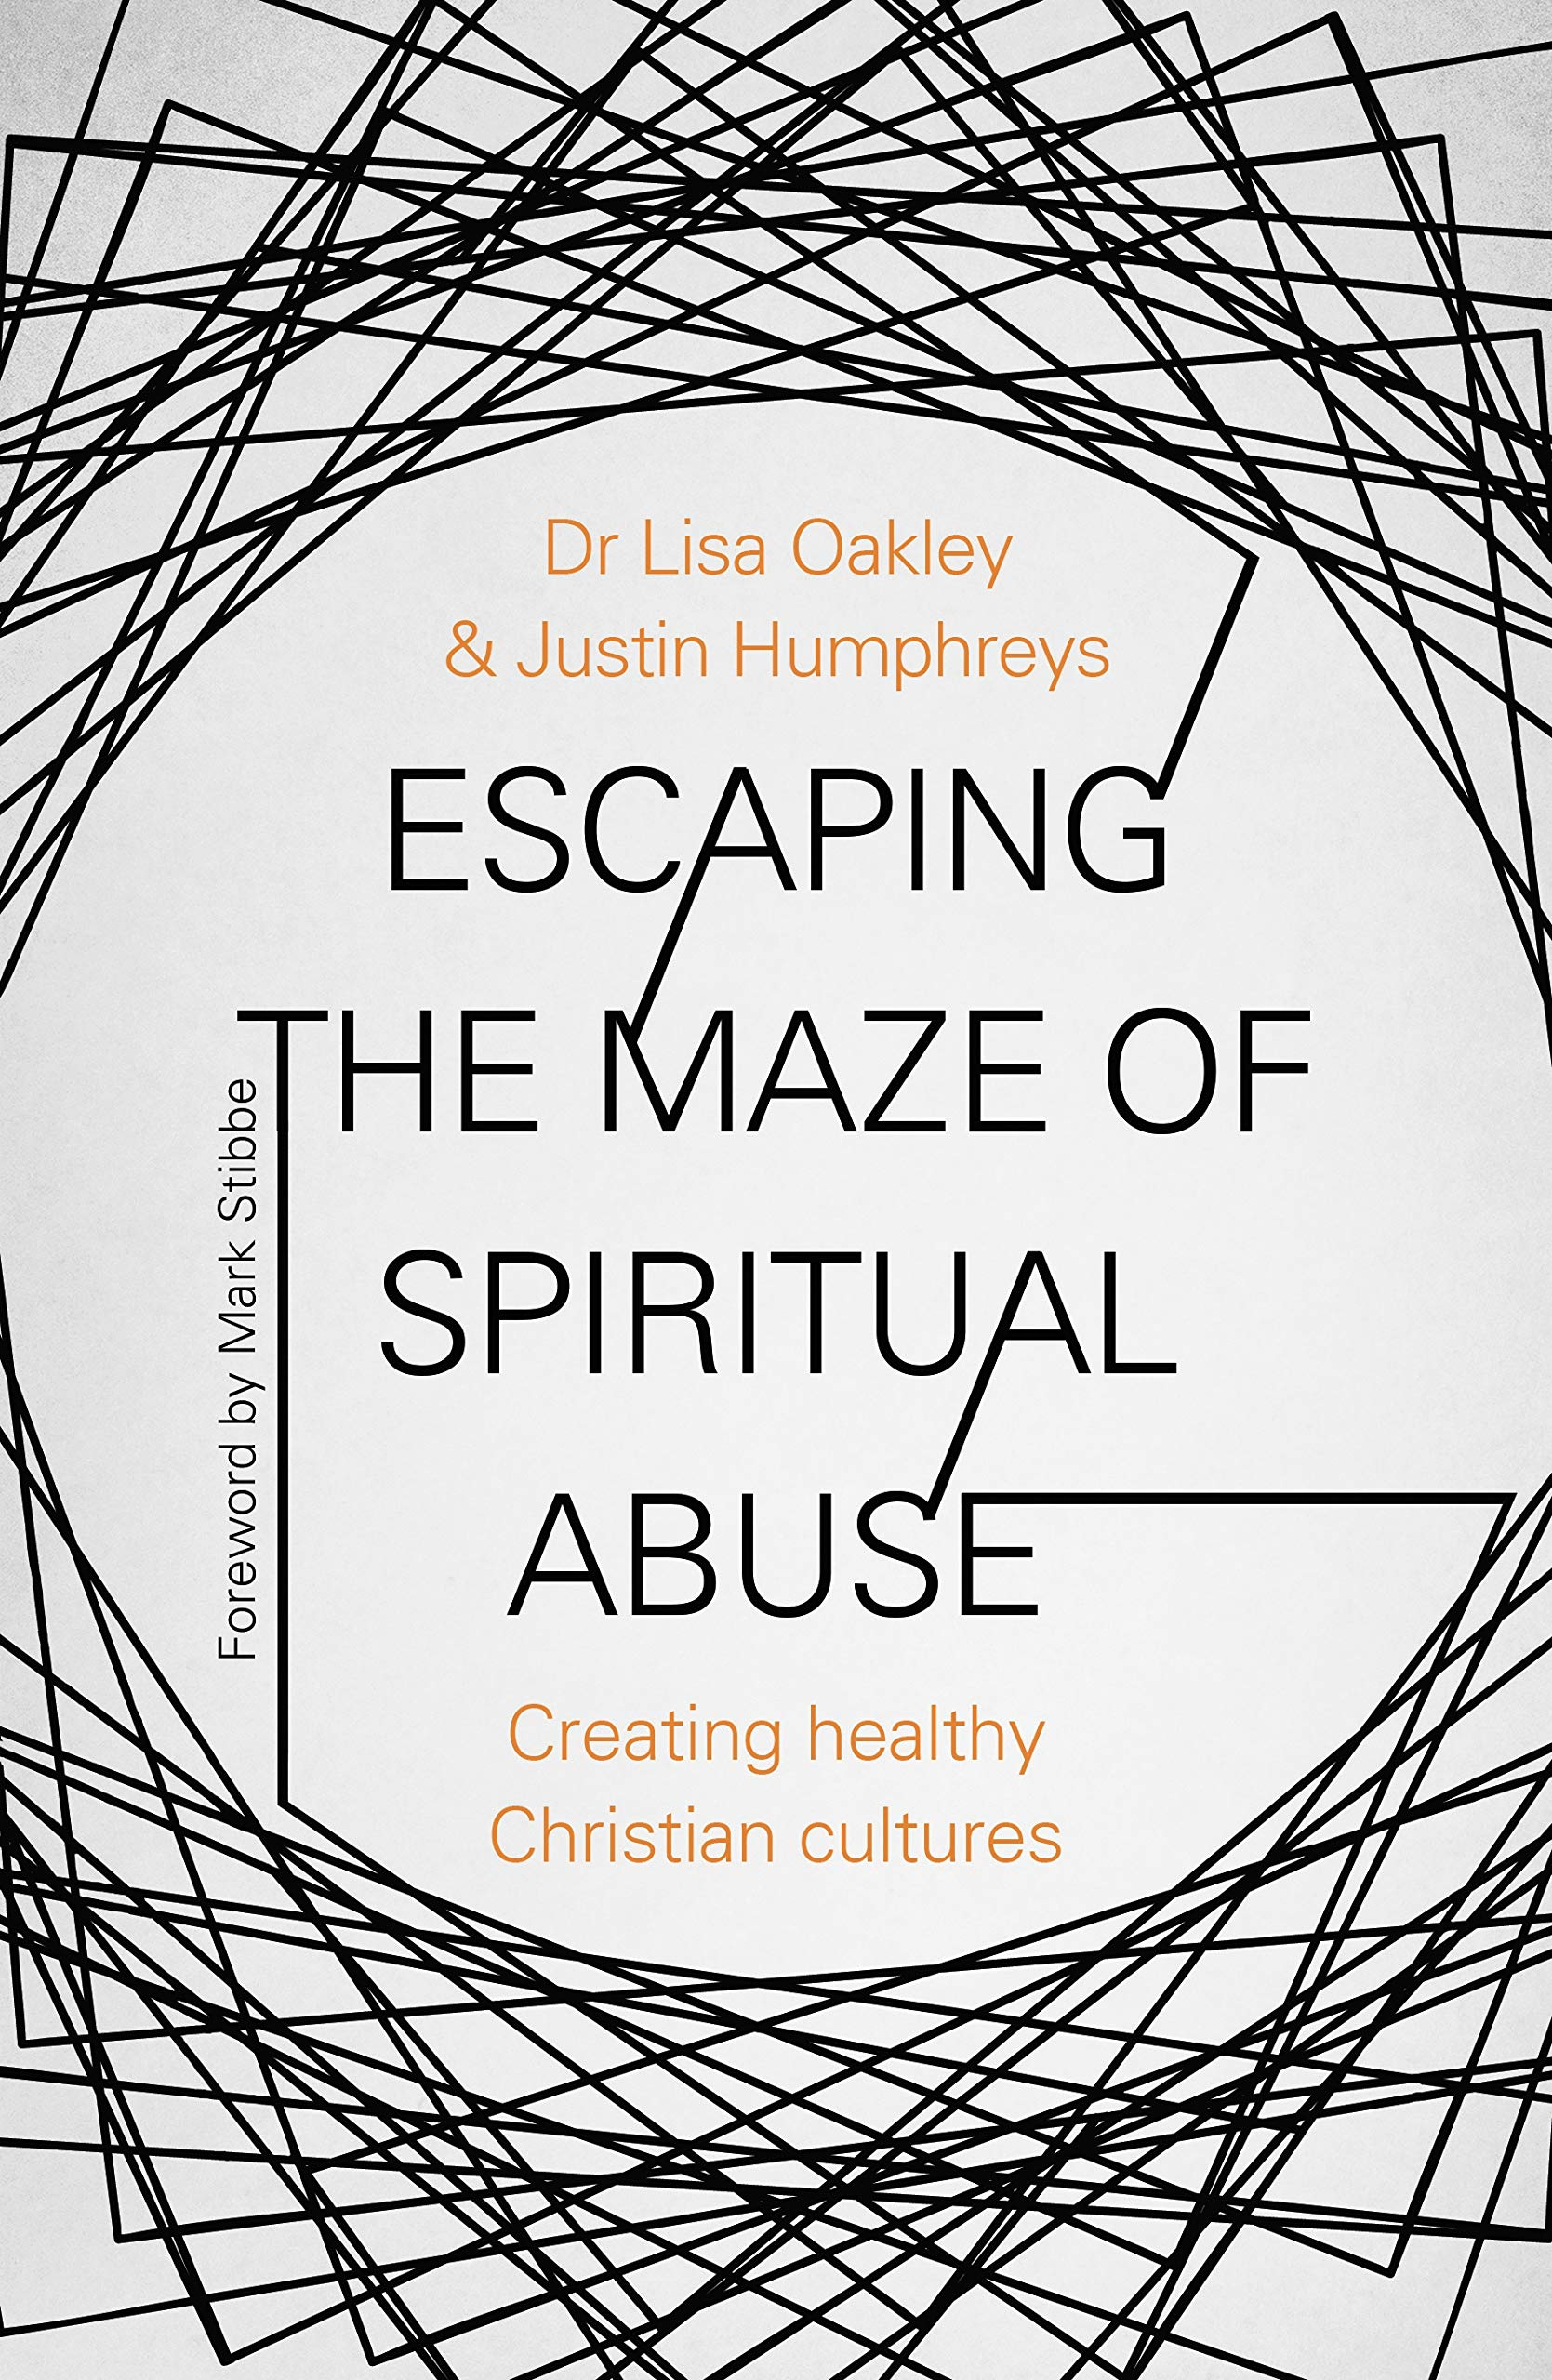 Image OfEscaping The Maze Of Spiritual Abuse: Creating Healthy Christian Cultures